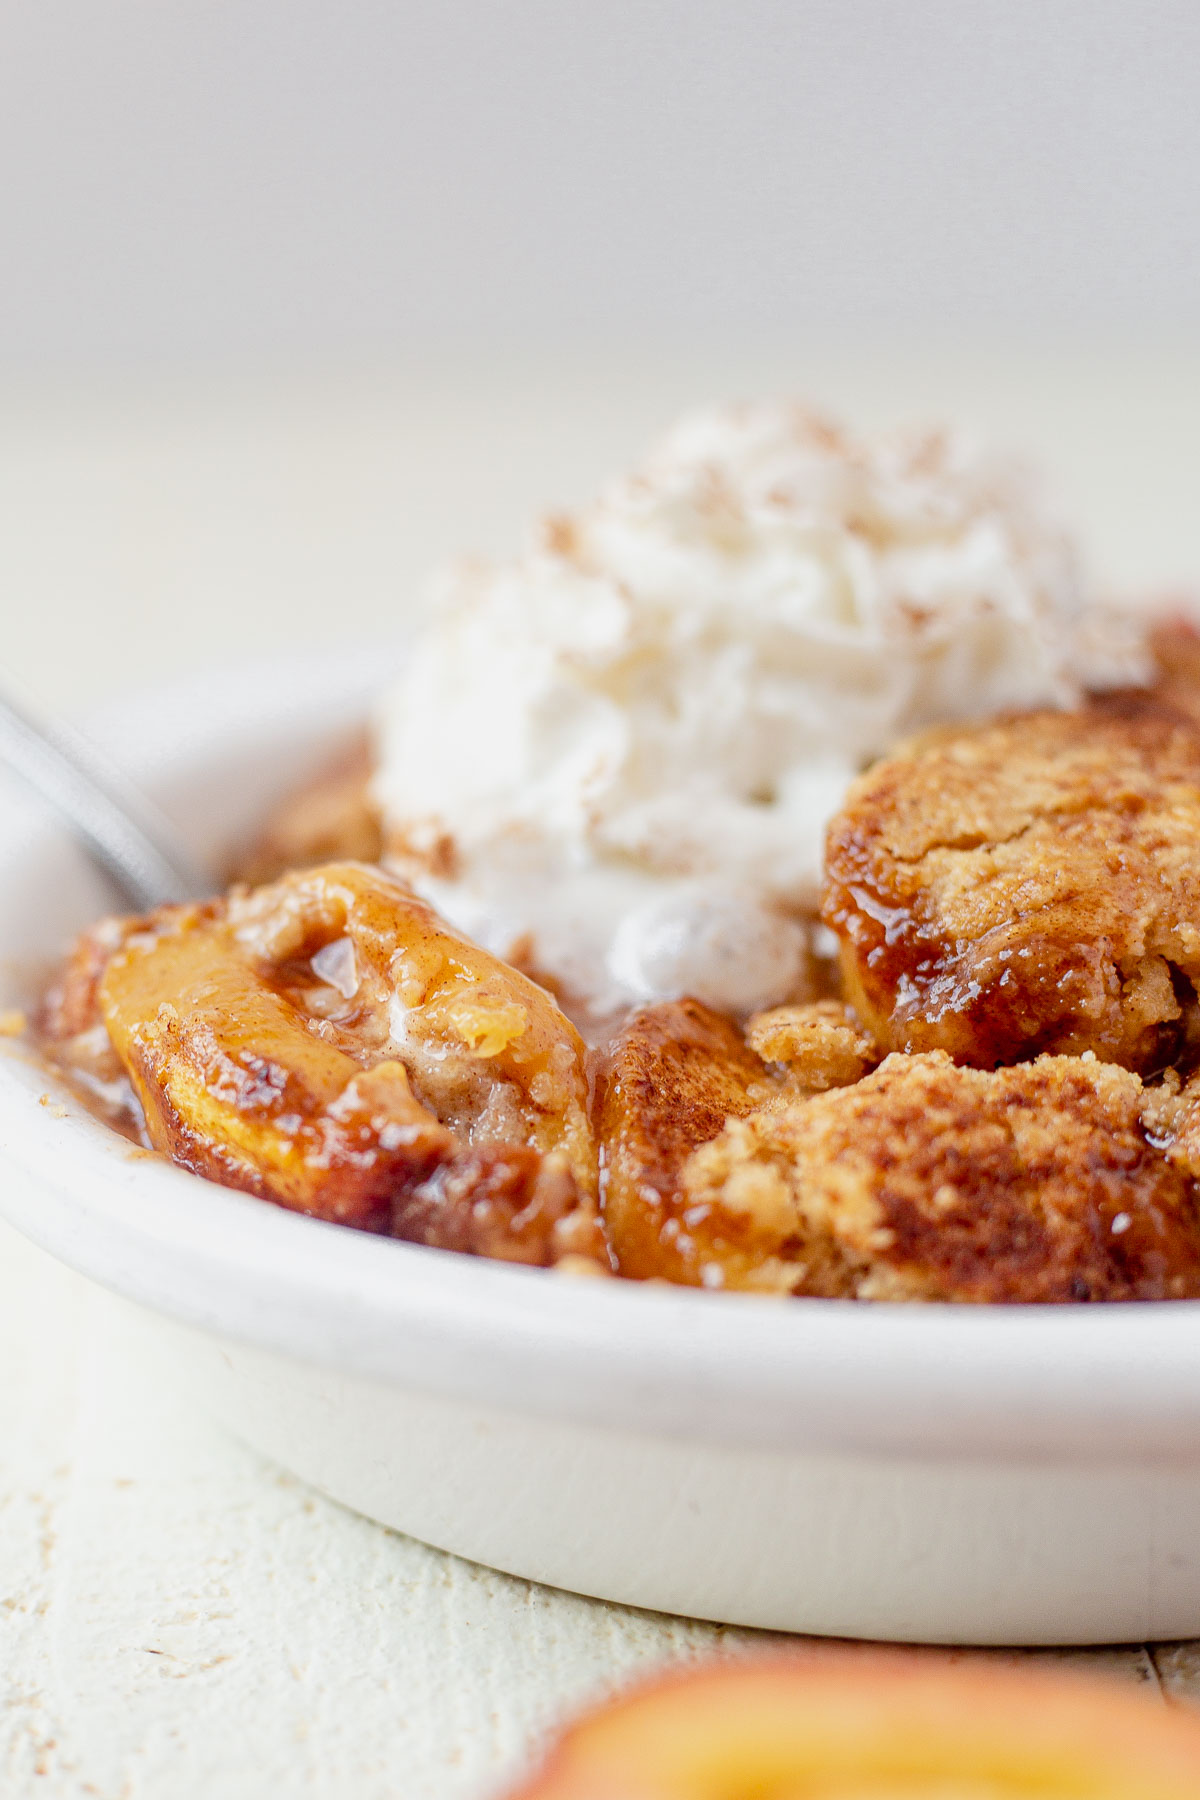 gooey peaches in a white serving dish with gluten free cobbler topping and whipped cream